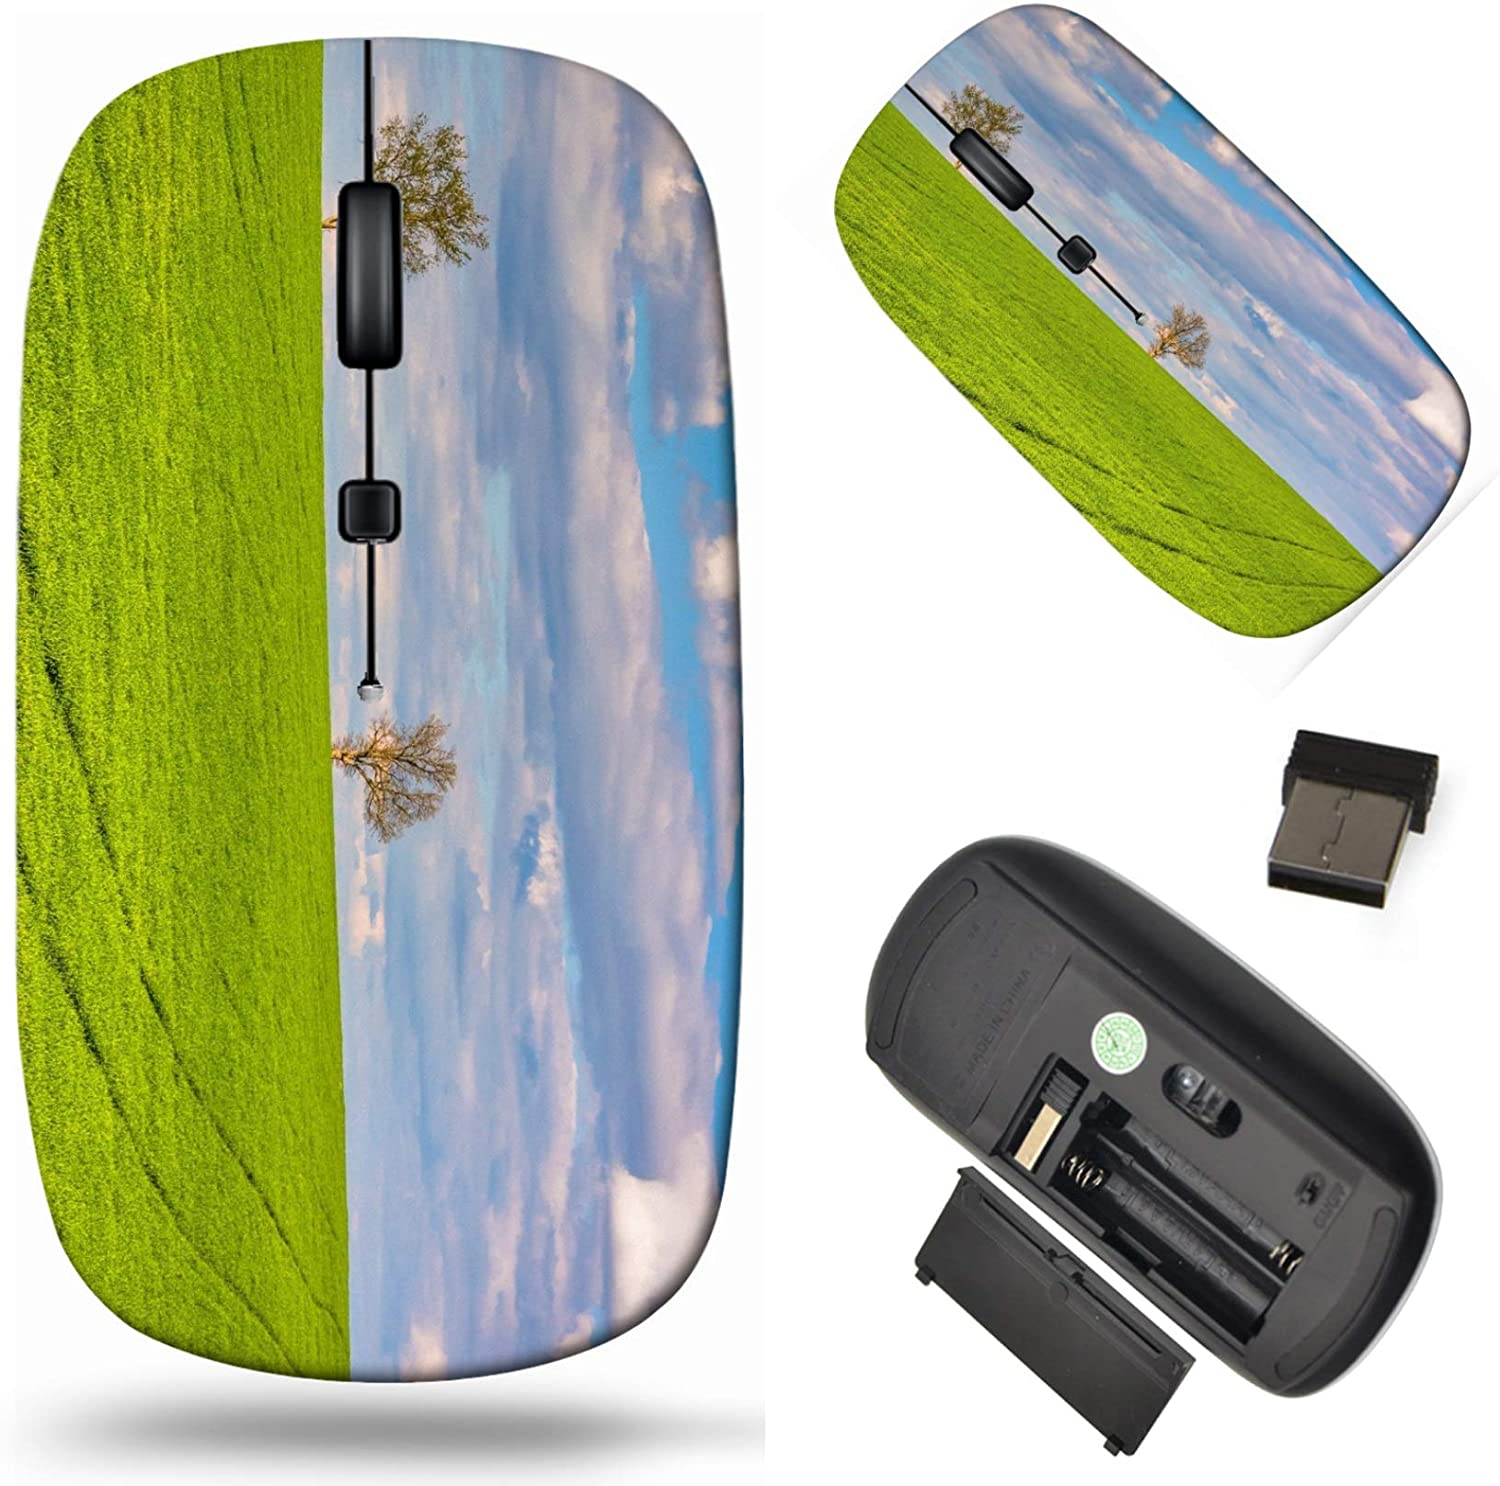 Wireless Department store Computer Mouse Over item handling ☆ 2.4G with Receiver USB Laptop Cor